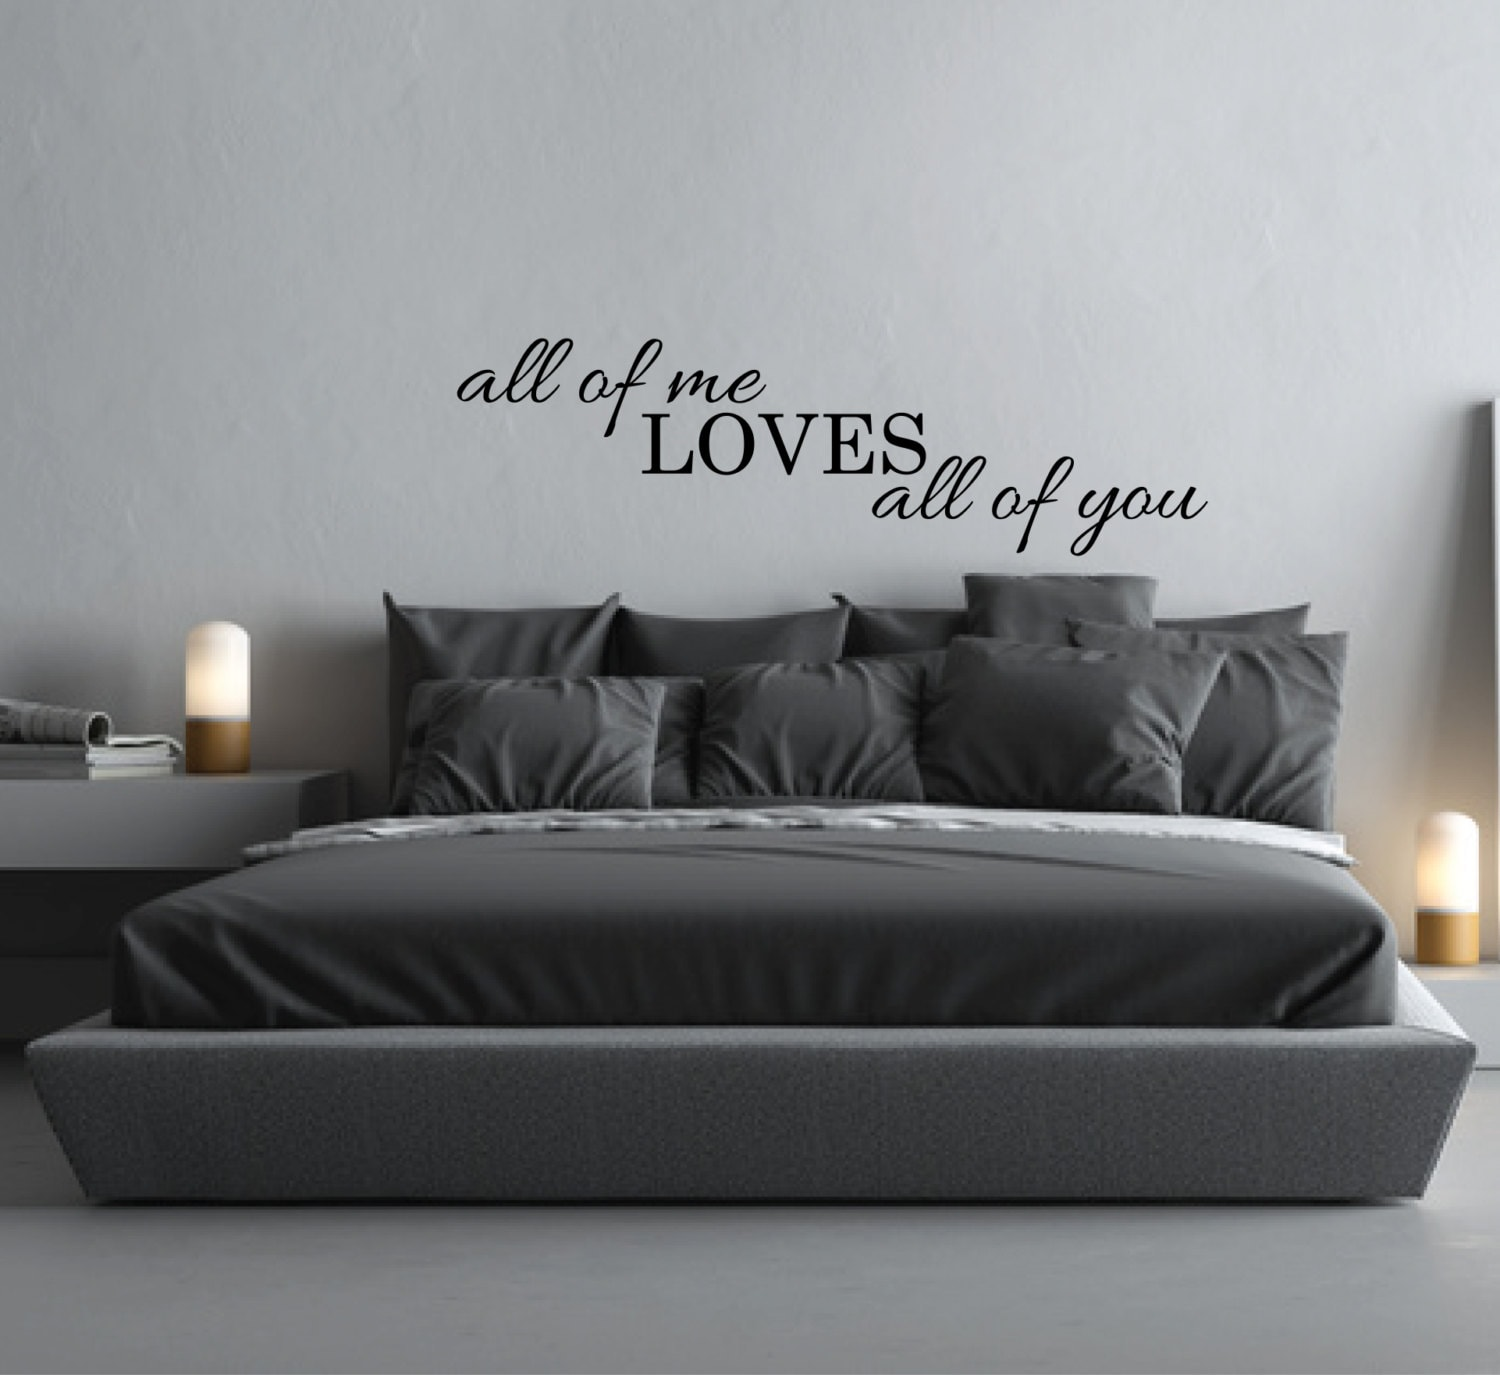 Wall Sticker Quote All Of Me Loves All Of You Above Bed Decor - Wall decals above bed